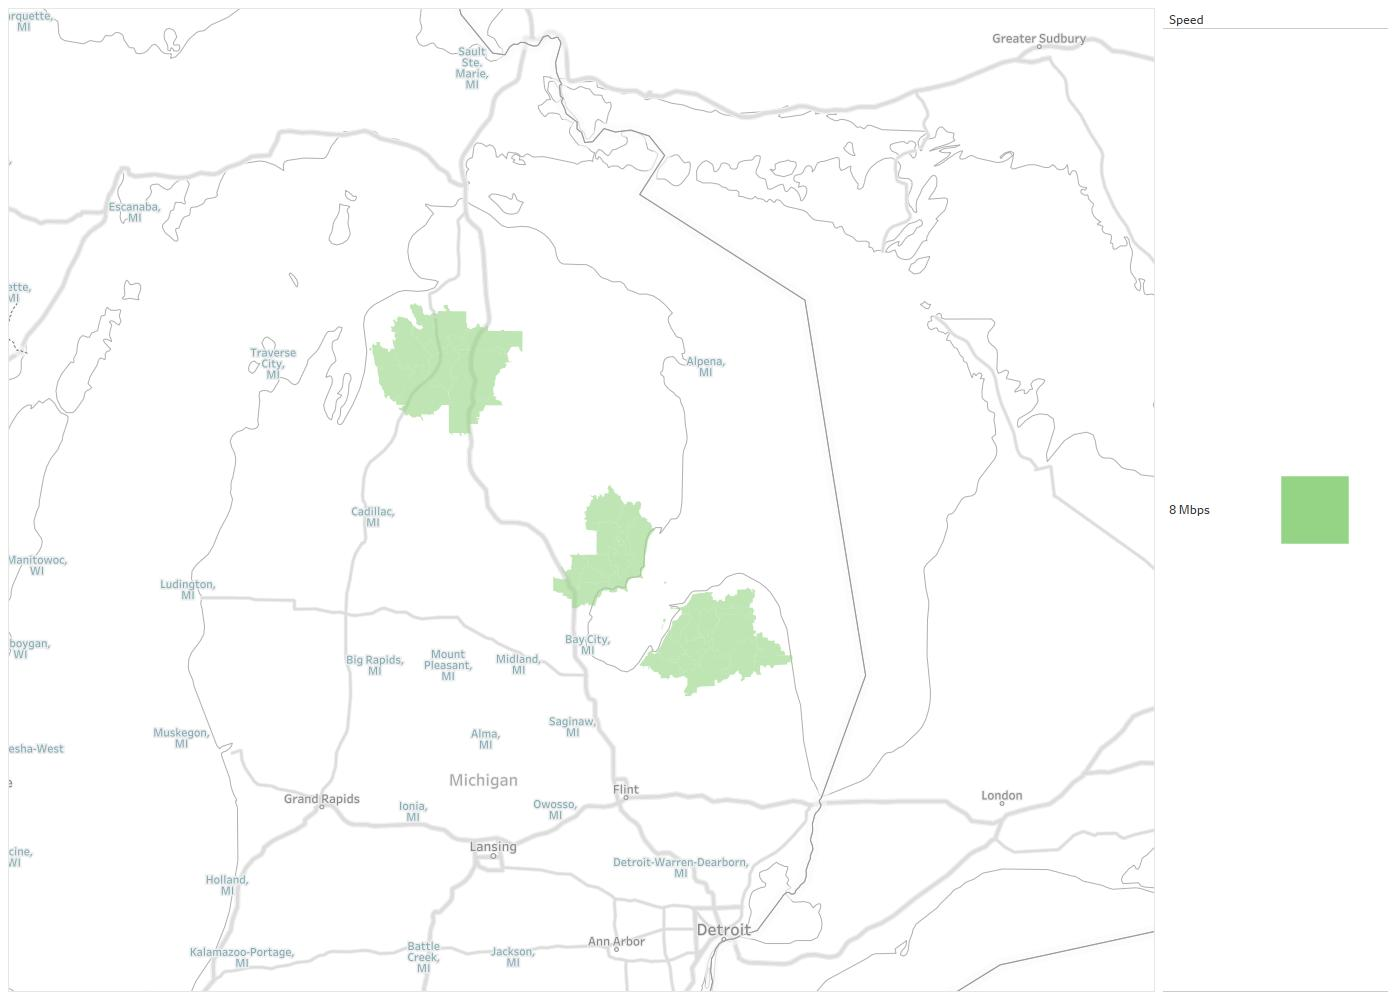 Battle Creek Mi Zip Code Map.Agri Valley Services Availability Areas Coverage Map Decision Data